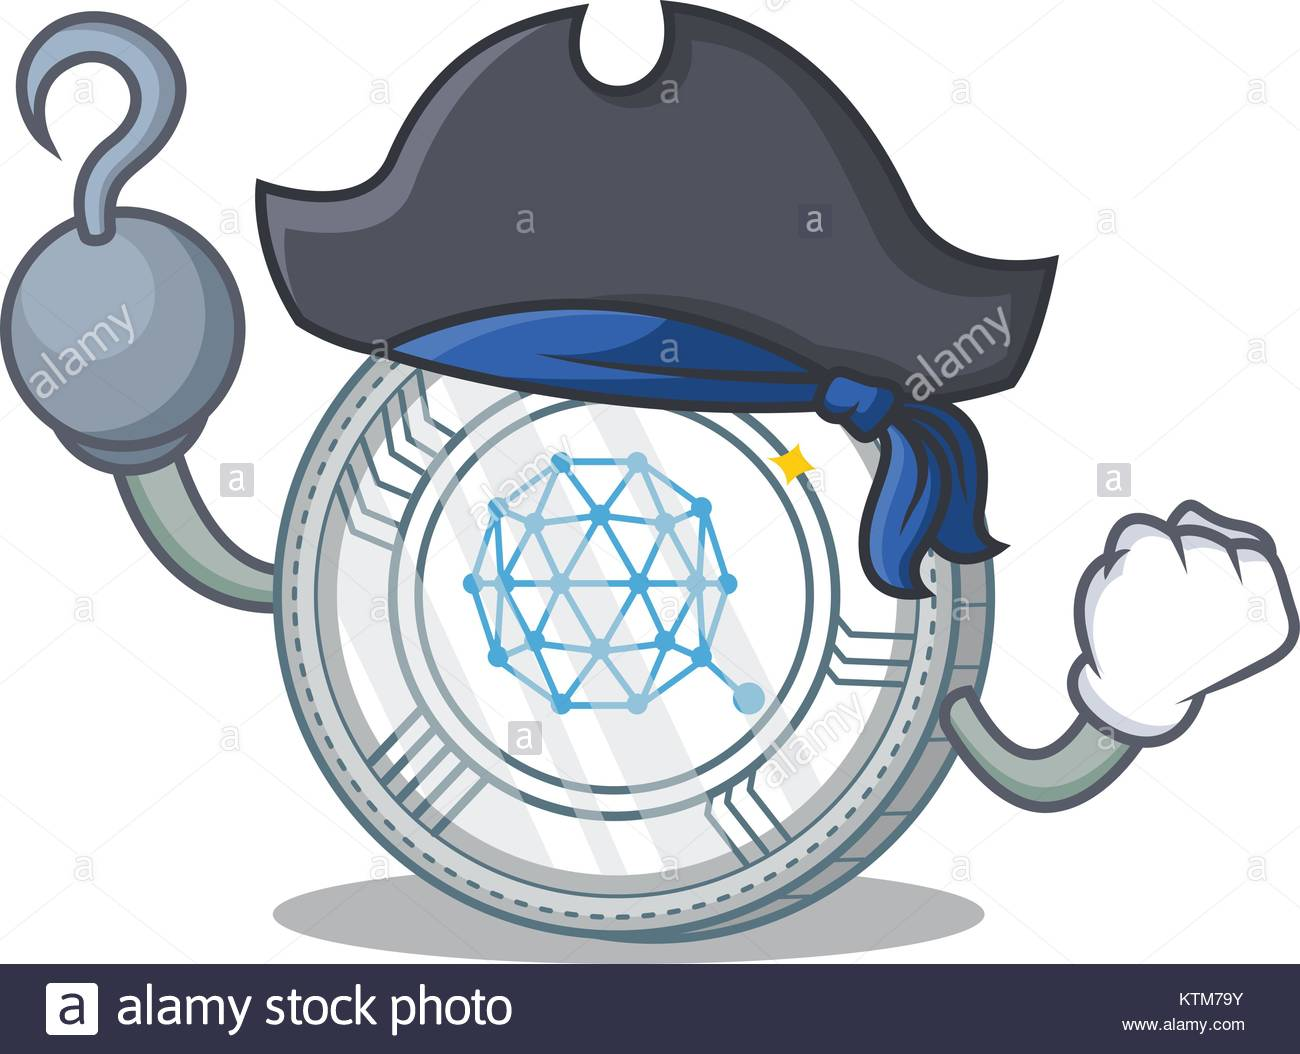 Pirate Qtum coin character cartoon - Stock Image